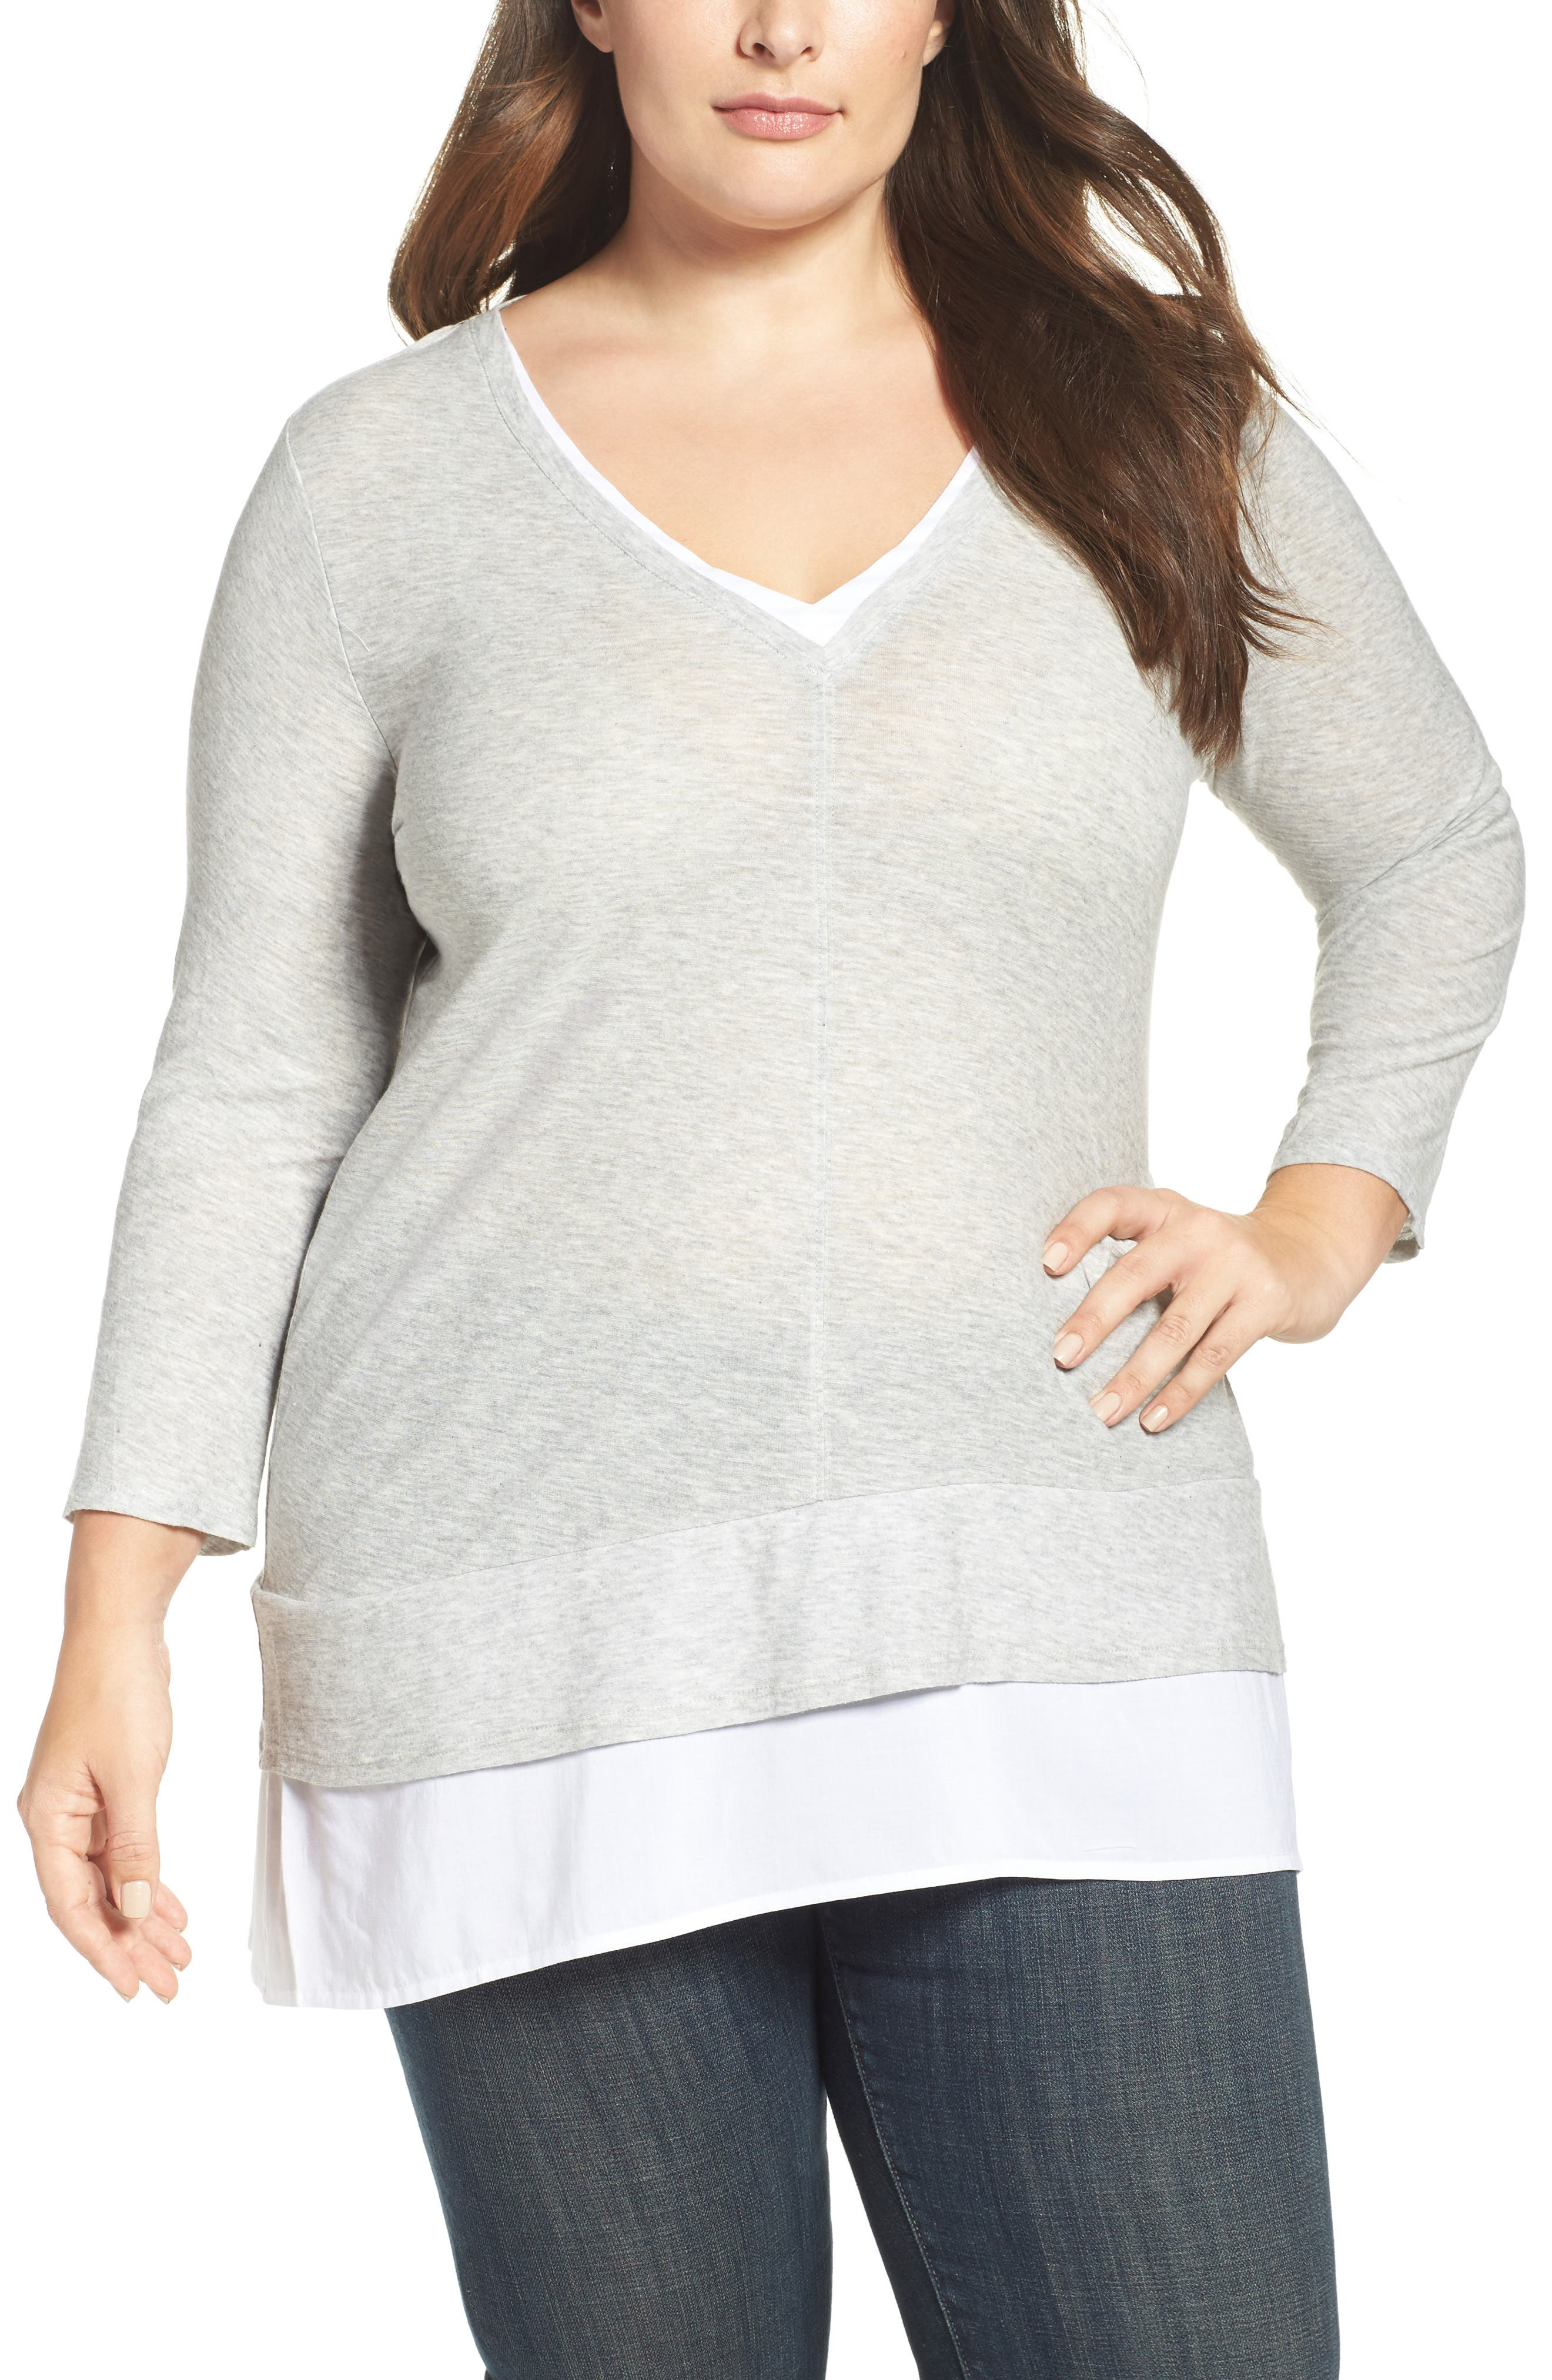 Two by Vince Camuto Layer Look Mixed Media Top (Plus Size)